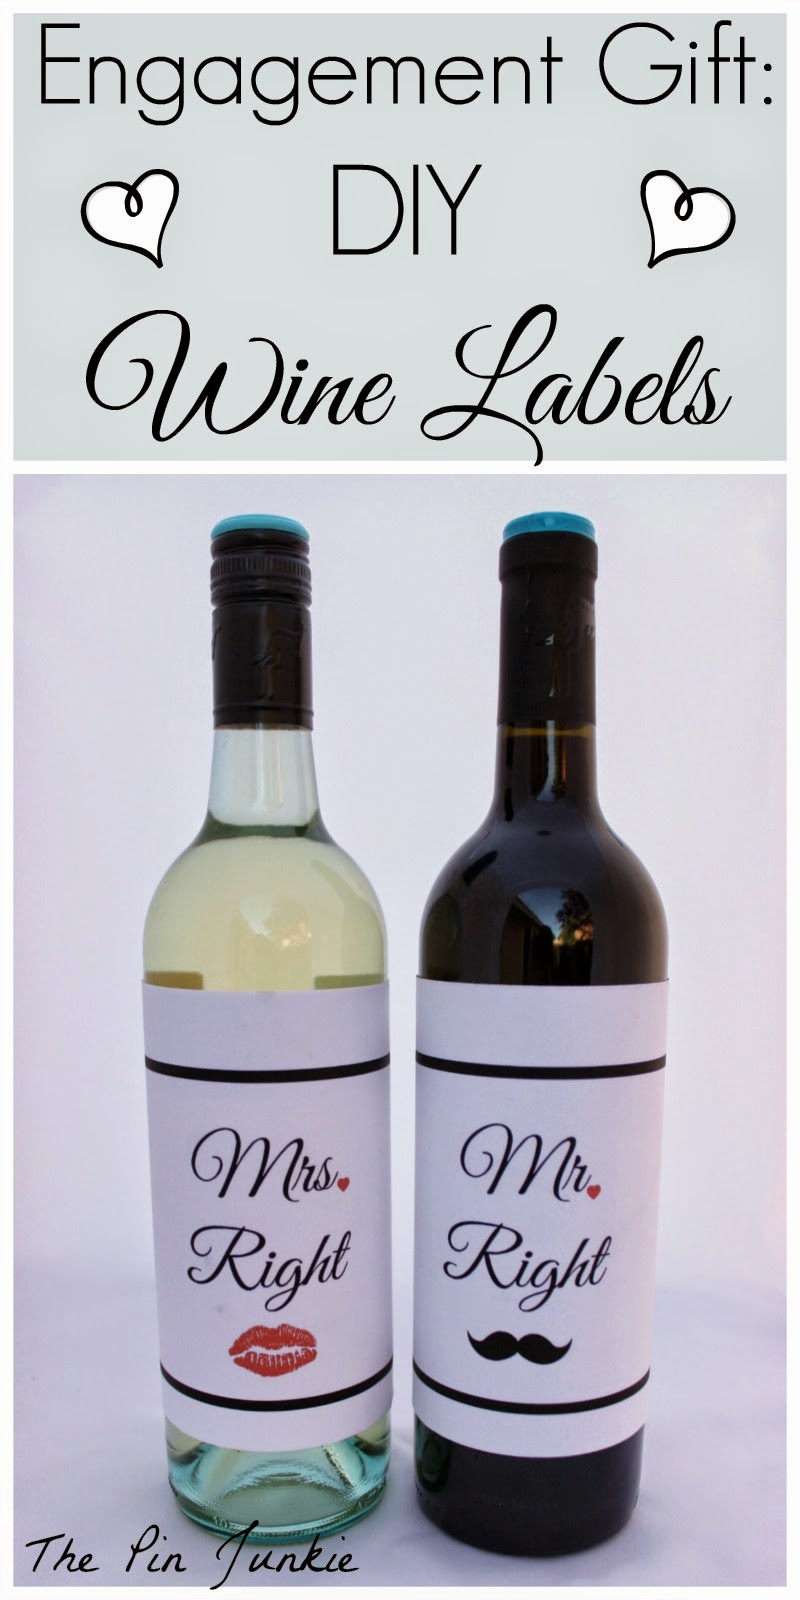 Engagement Gift: DIY Wine Labels